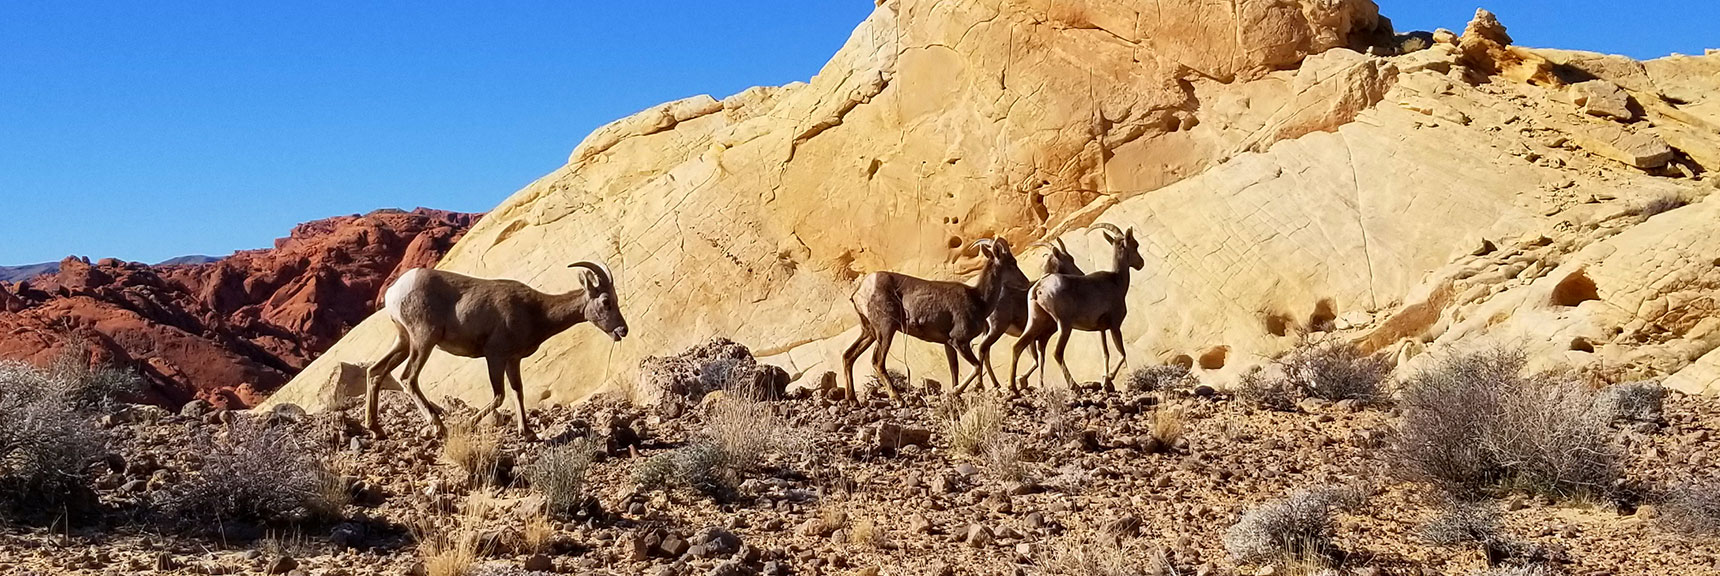 Bighorn Sheep at Silica Dome In Valley of Fire State Park, Nevada Slide 002